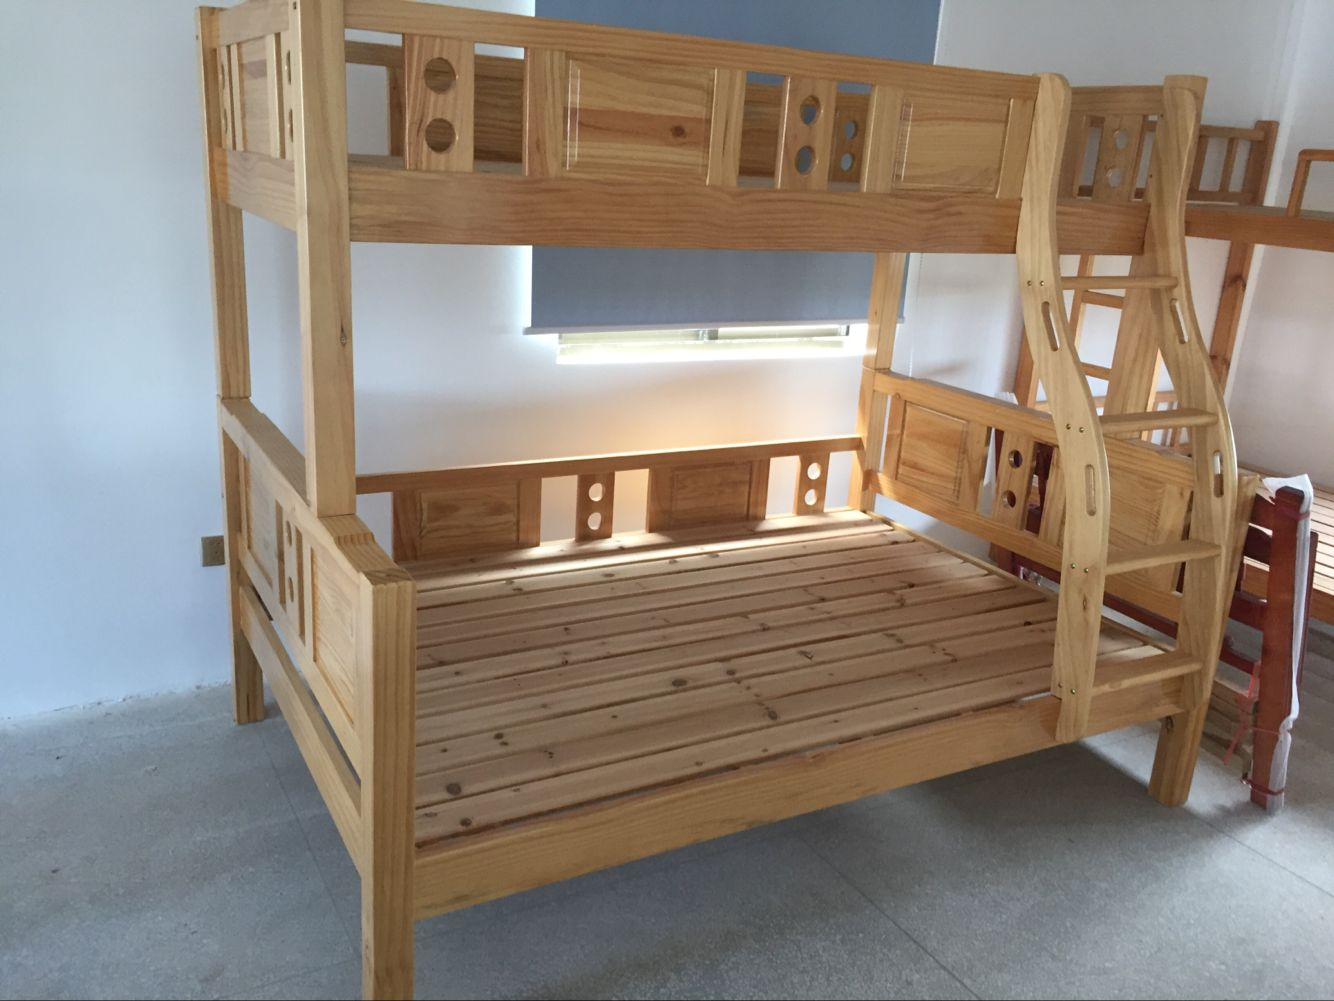 New Zealand pine tree bed, 1.2 meters below 1.5M high and low bed, upper berth, lower berth, solid wood, Suzhou City packing